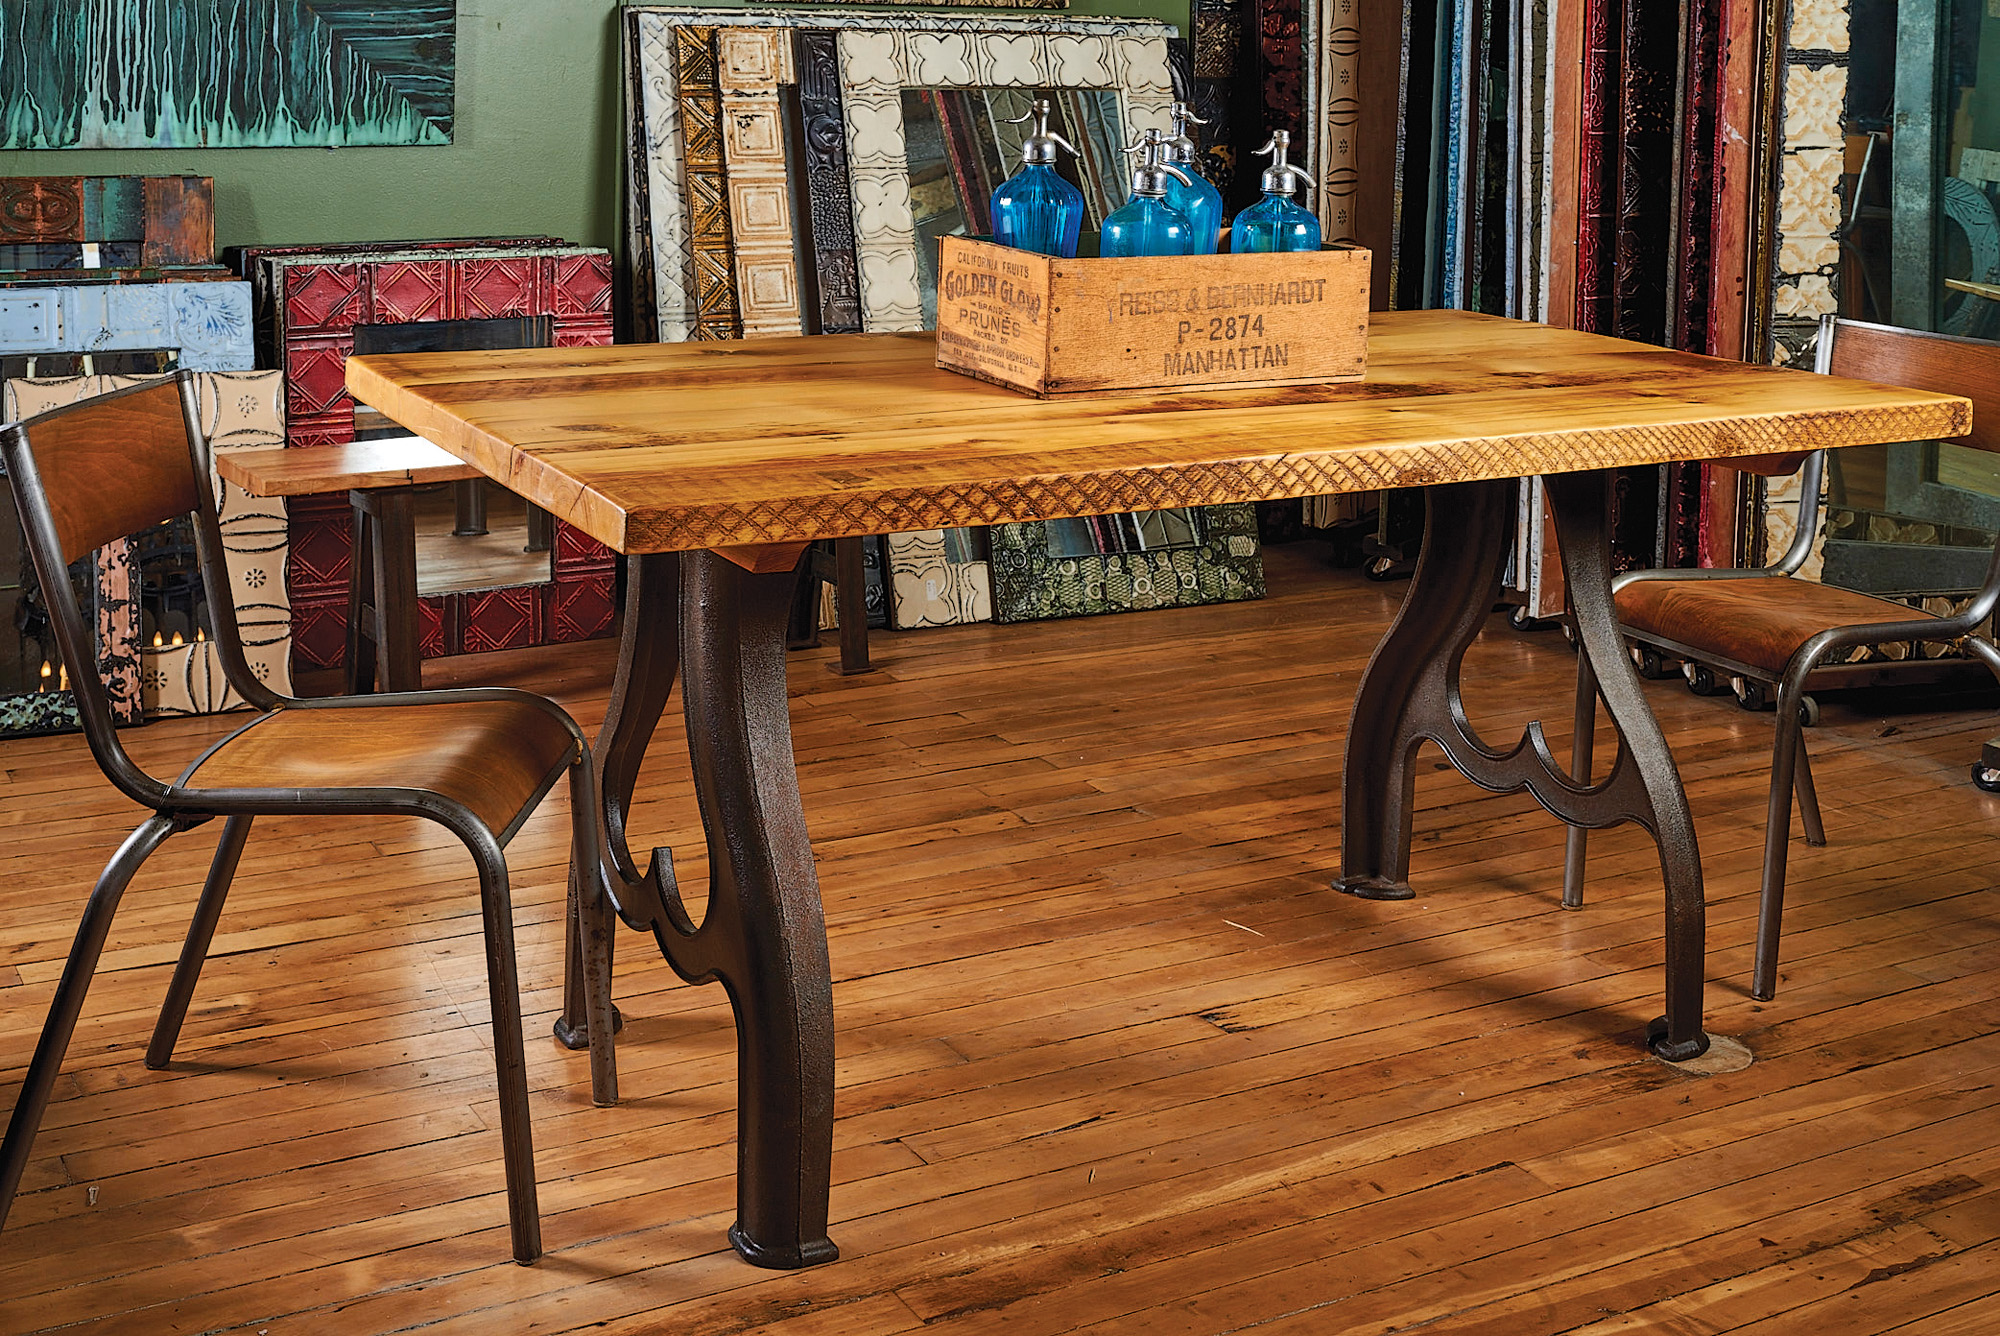 Both the industrial iron bases and the wood tabletop are salvaged materials  that found new life. Reclaimed Wood Tables   Old House Restoration  Products   Decorating